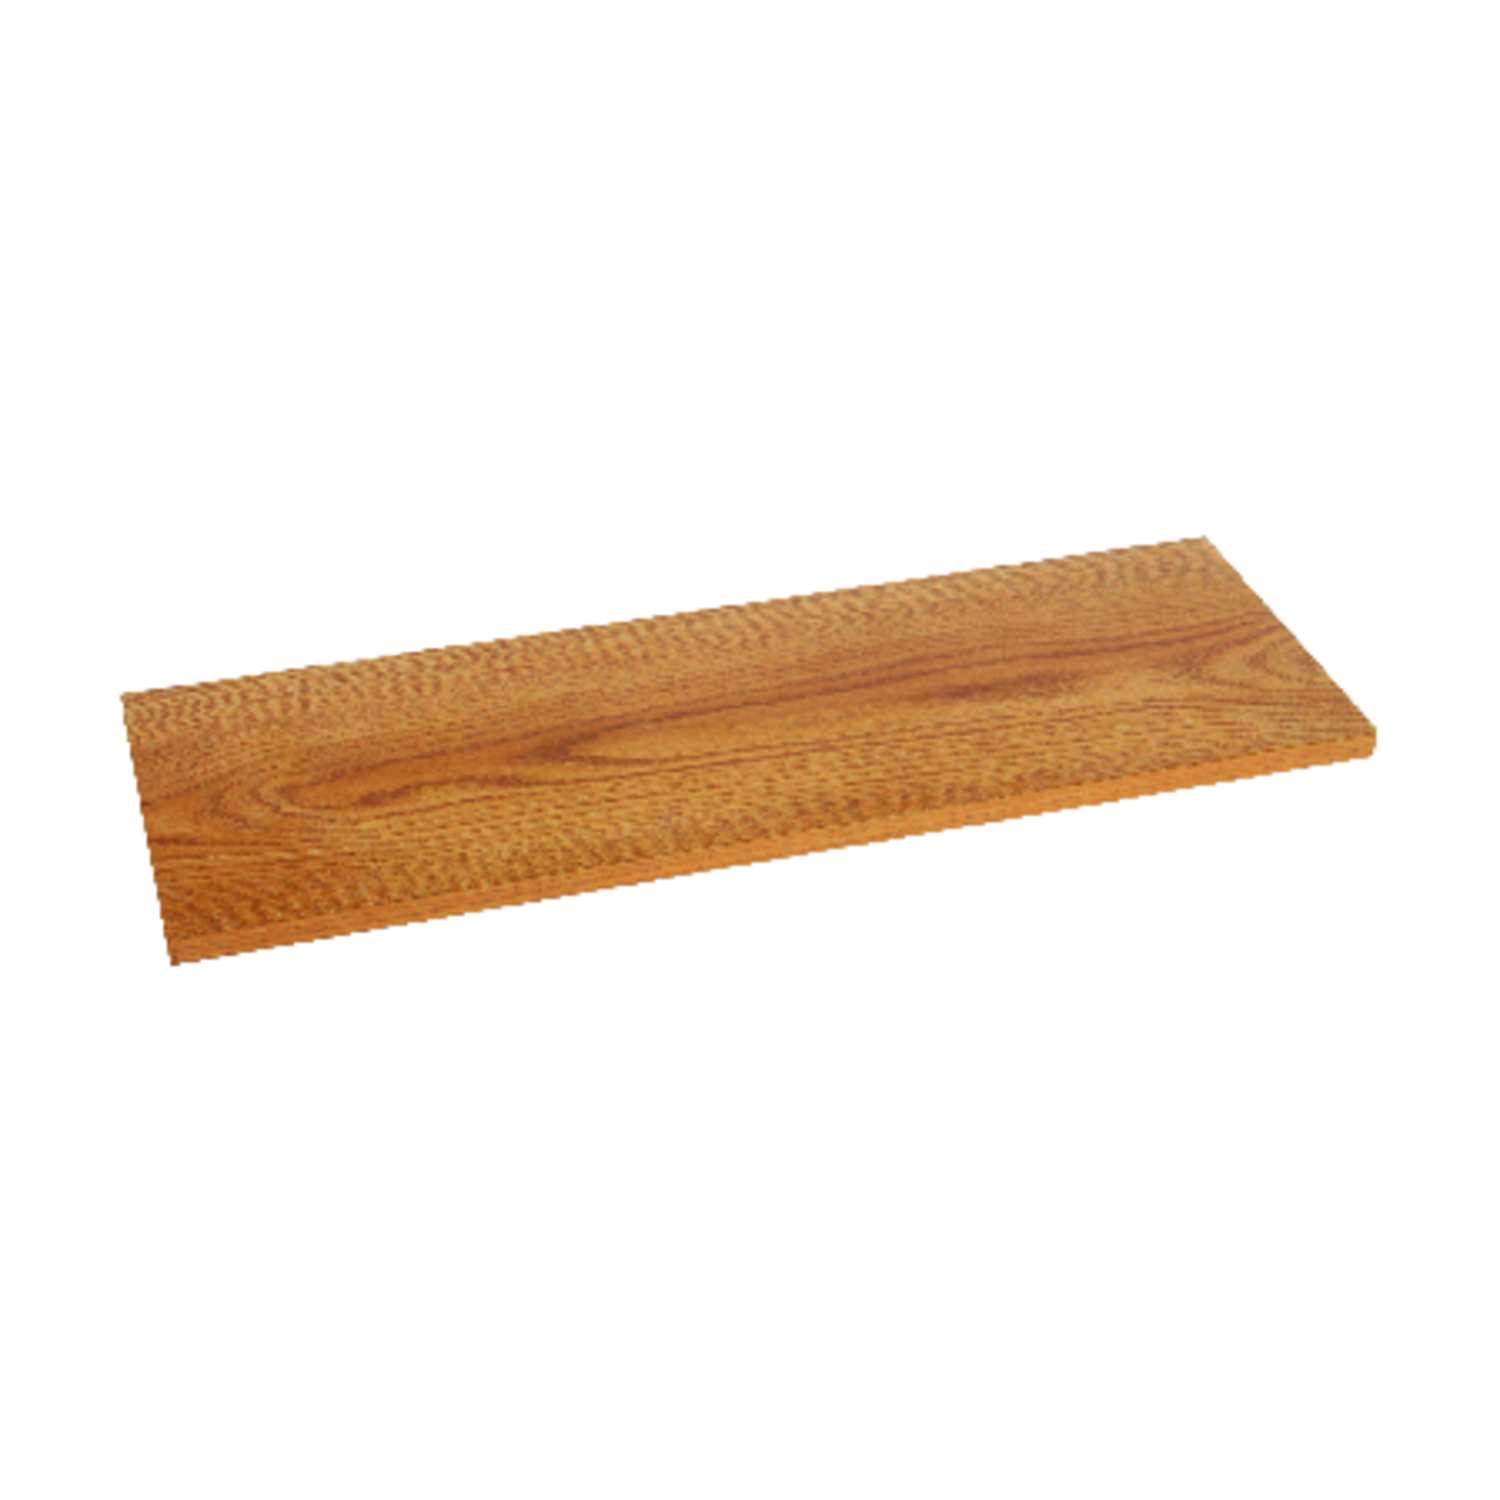 Knape & Vogt  10 in. W x 10 in. H x 24 in. D Oak  Melatex Laminate/Particle Board  Shelf Board